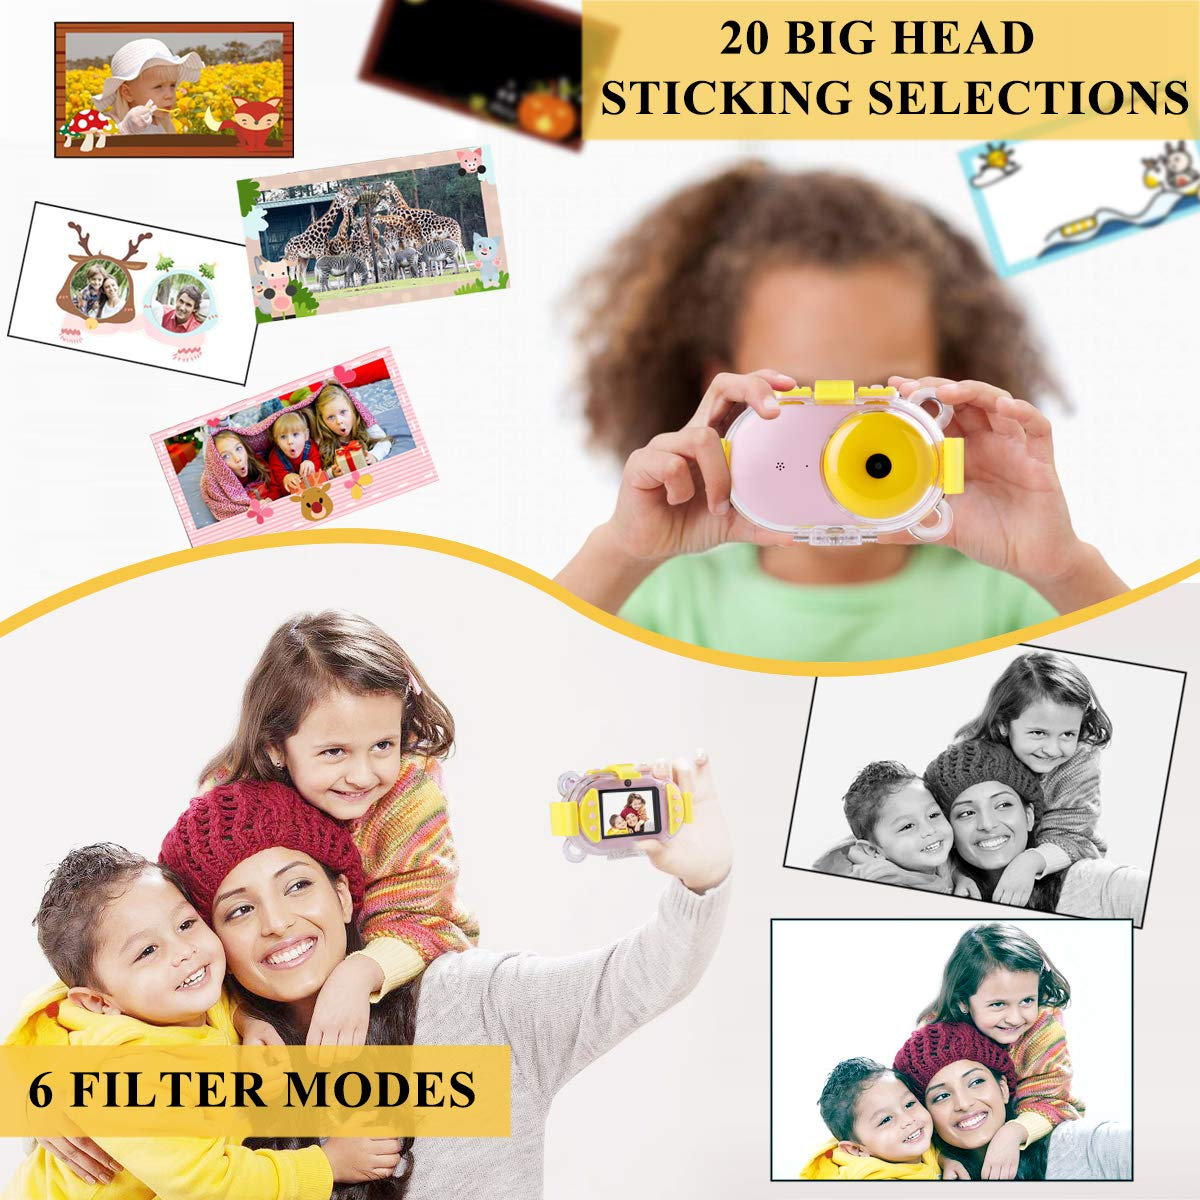 Kids Camera, OPOLEMIN Kids Waterproof Camera Kids Video Camera with Sound Playback Underwater Digital Camera Camcorderfor Kids with 16G Memory Card for Children's Day Birthday Trip Beach Swimming by OPOLEMIN (Image #4)